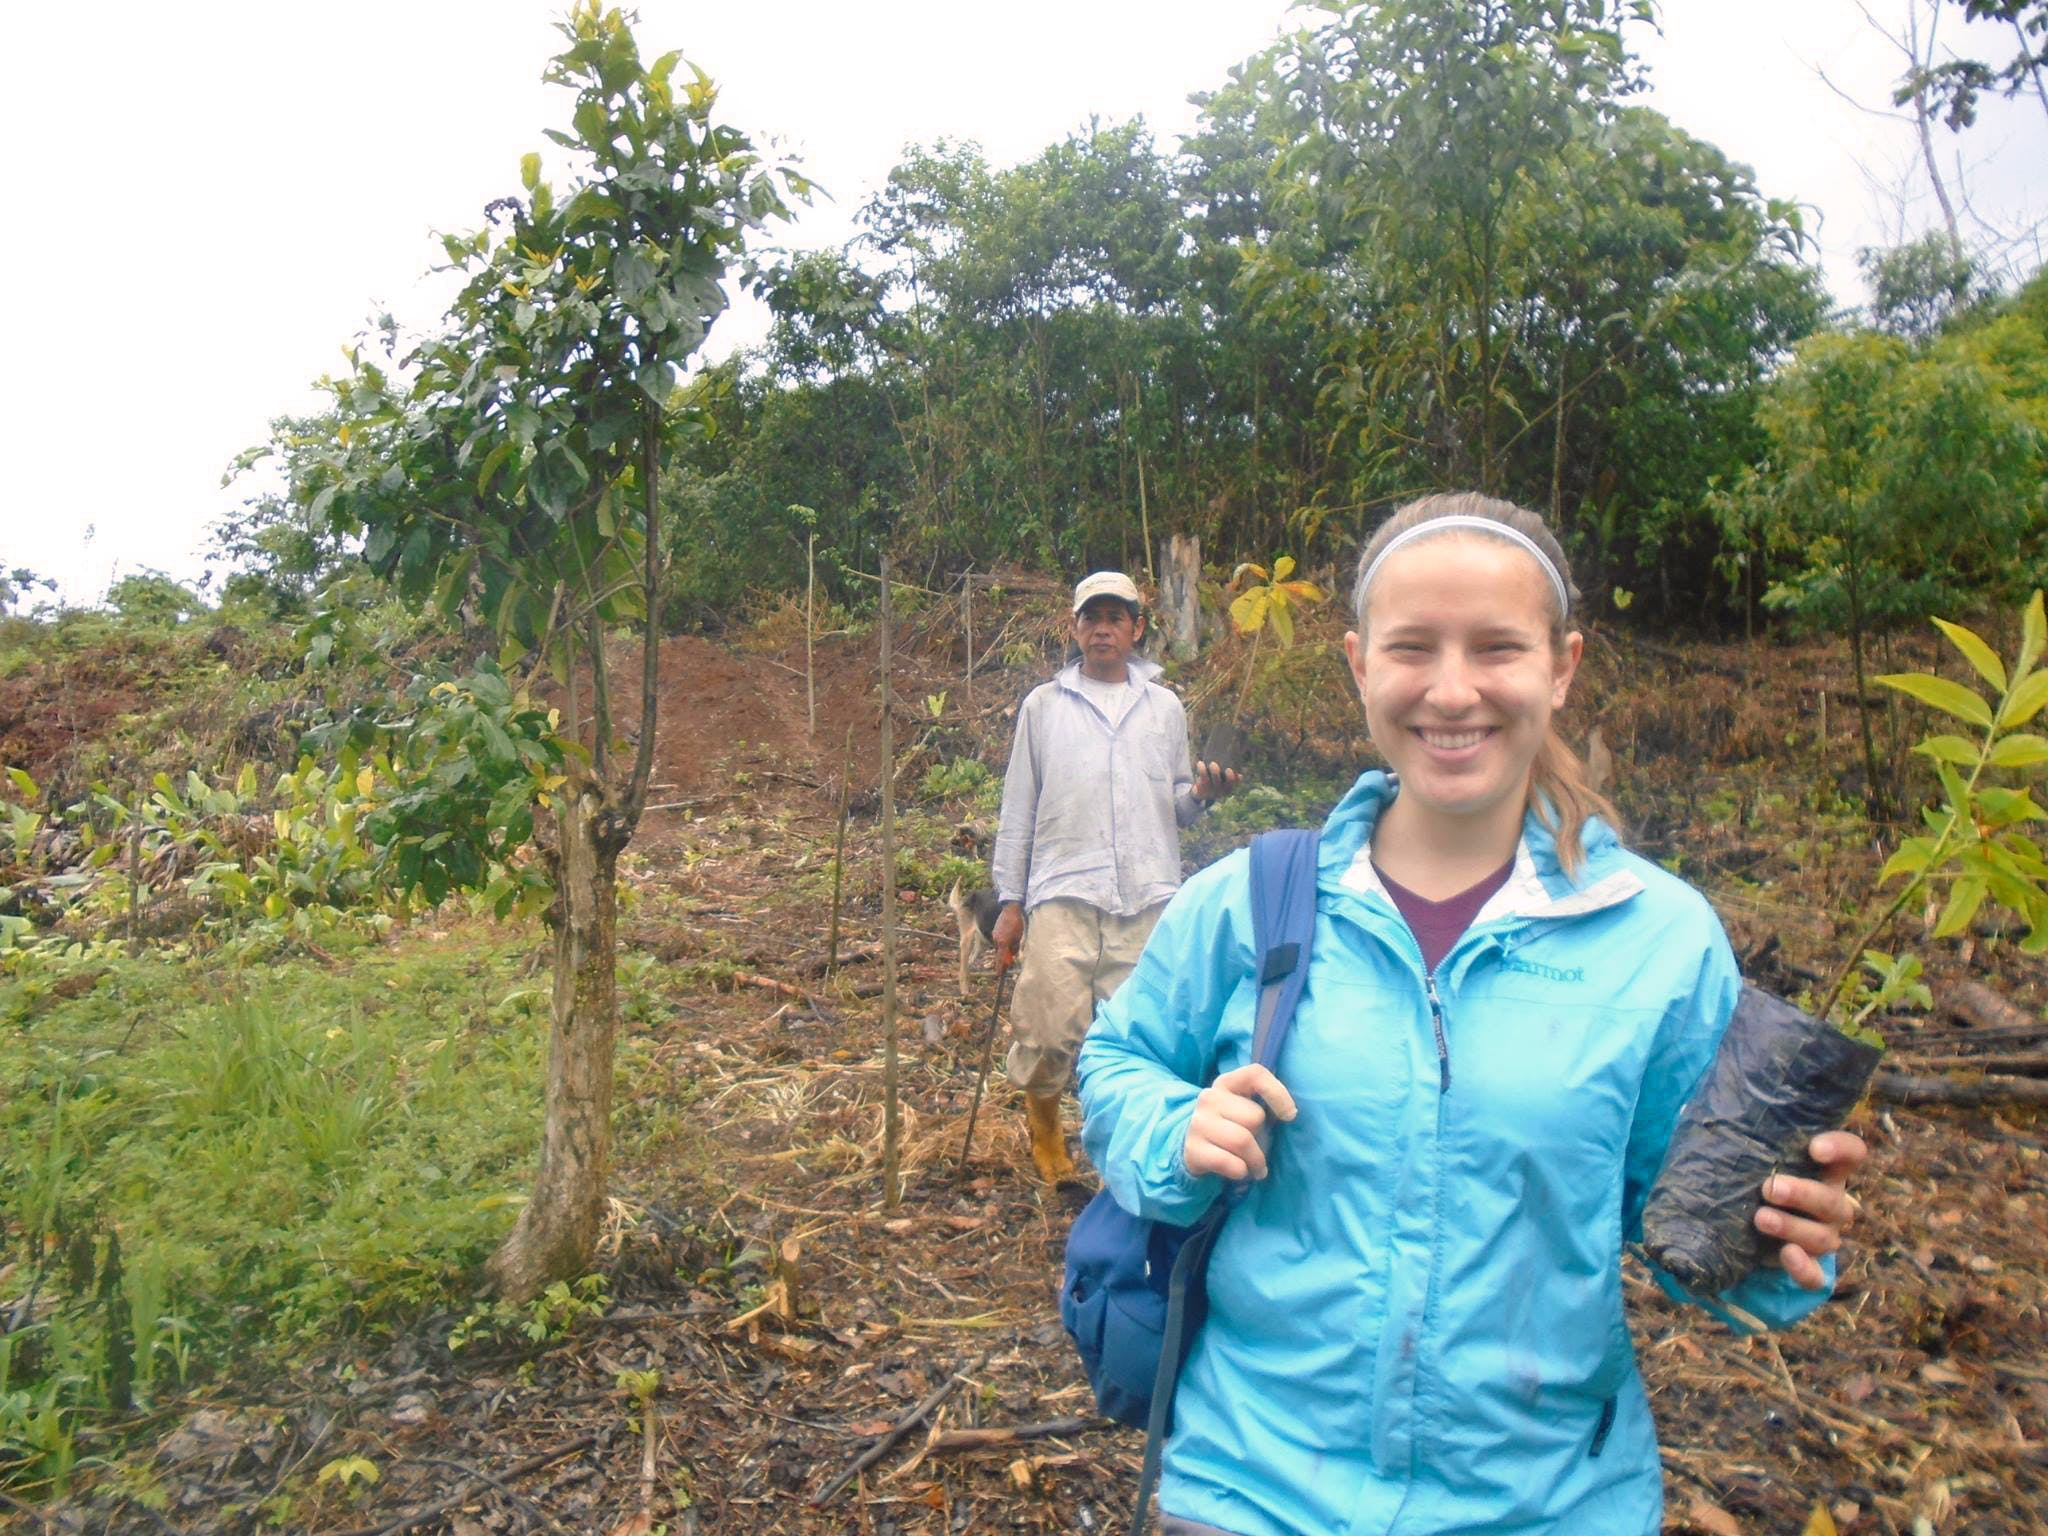 Forest Conservation and Agroforestry Internship